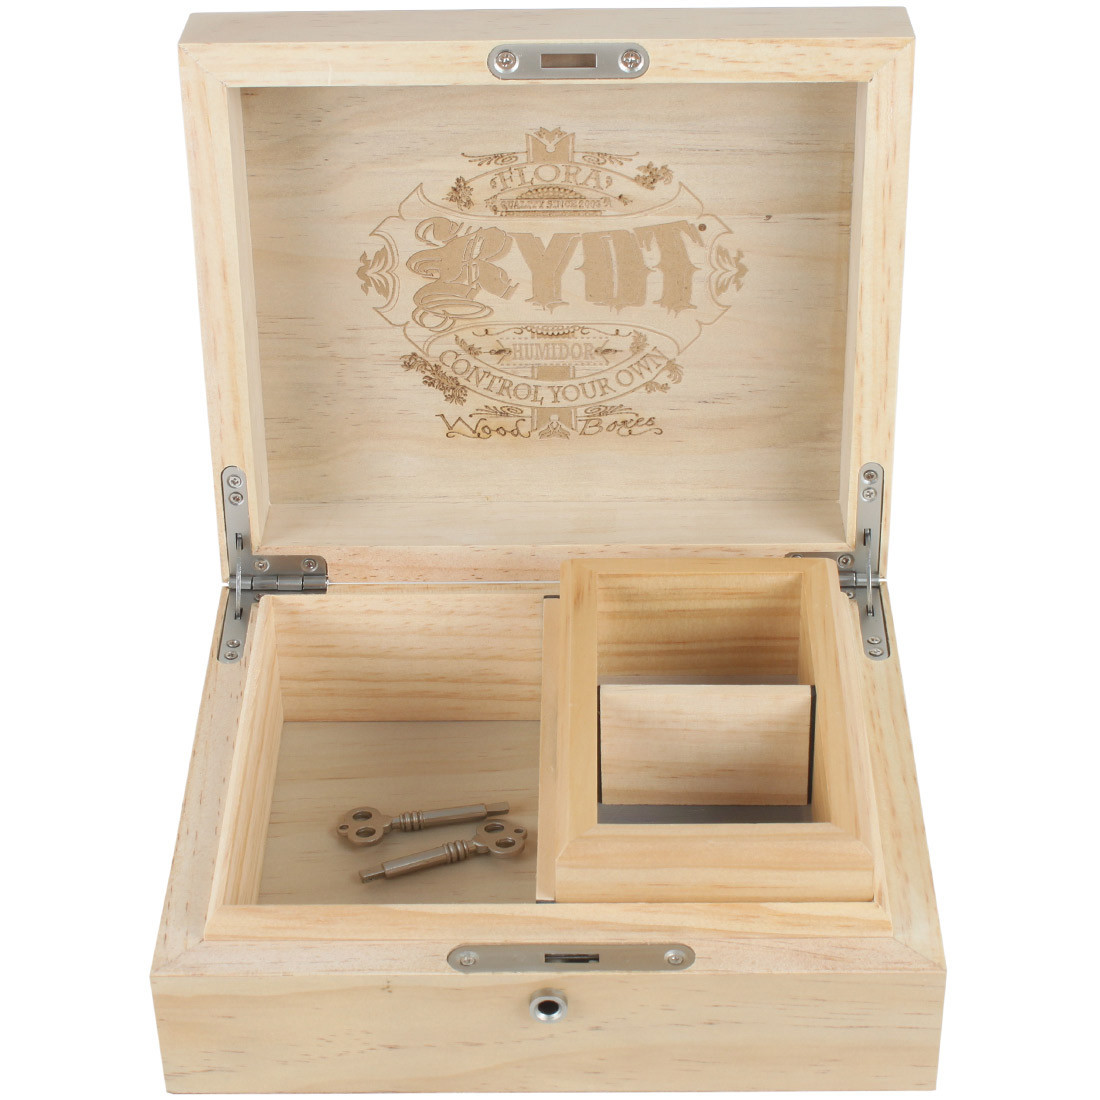 6x8 Humidor Combo Box with 3x5 Insert Box